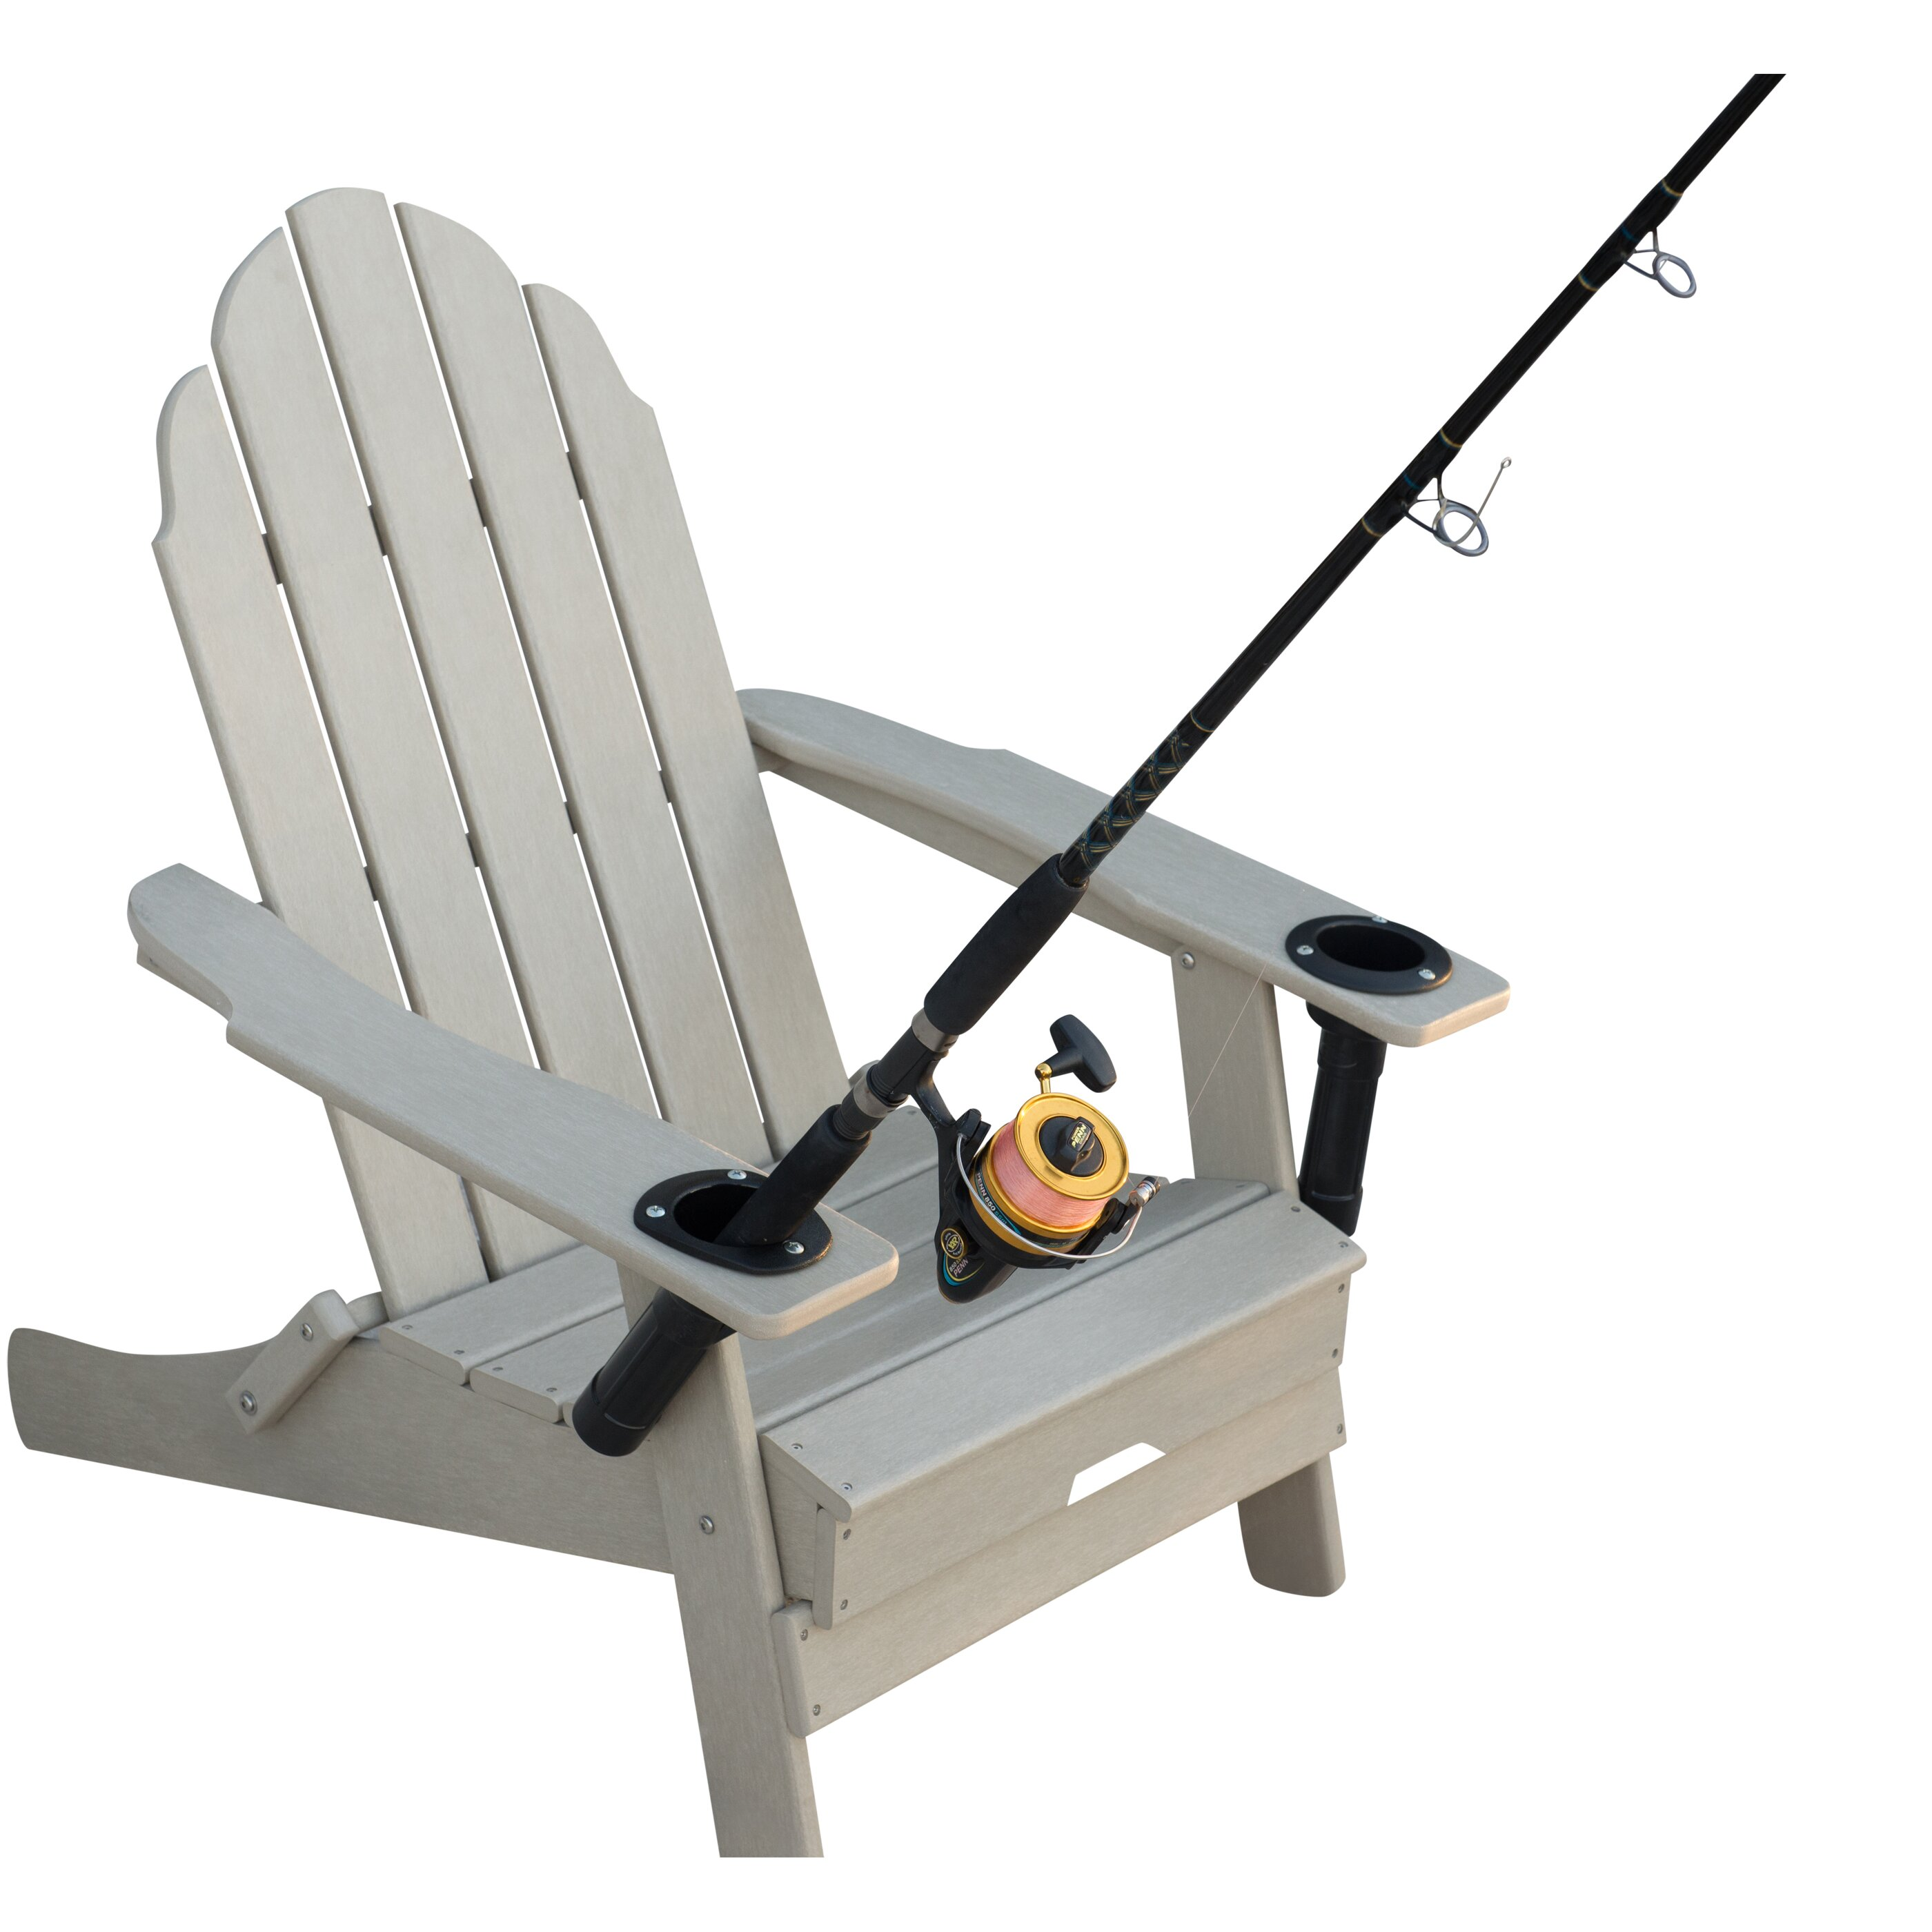 Folding Anglers Chair With Cup And Rod Holders Wayfair